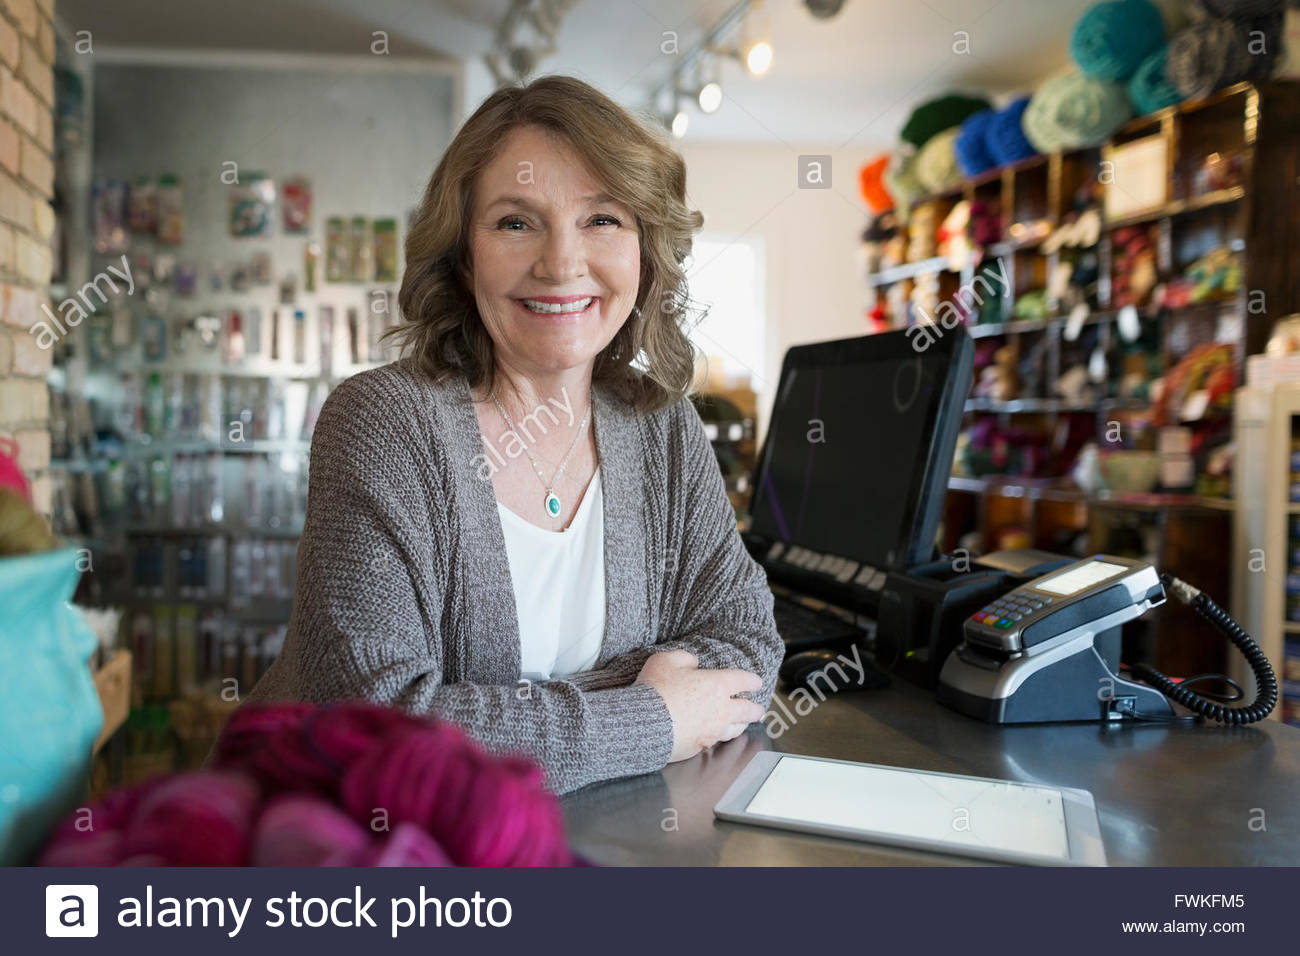 Portrait smiling yarn store owner with digital tablet Photo Stock